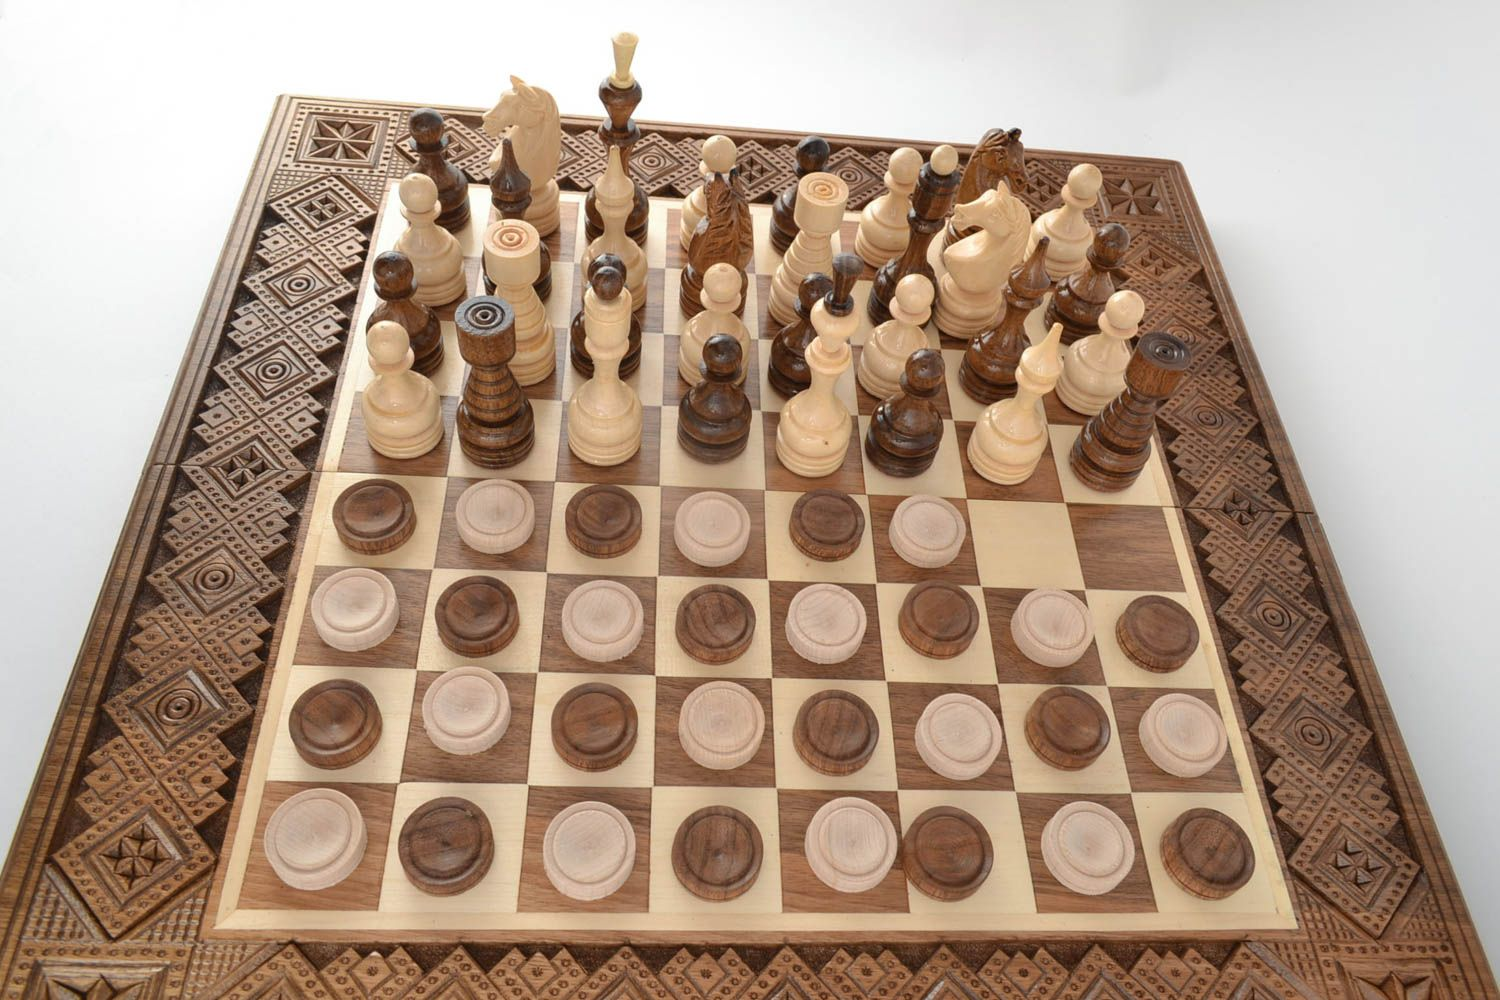 Handmade wooden table game chess and checkers beautiful carved chess board - MADEheart.com